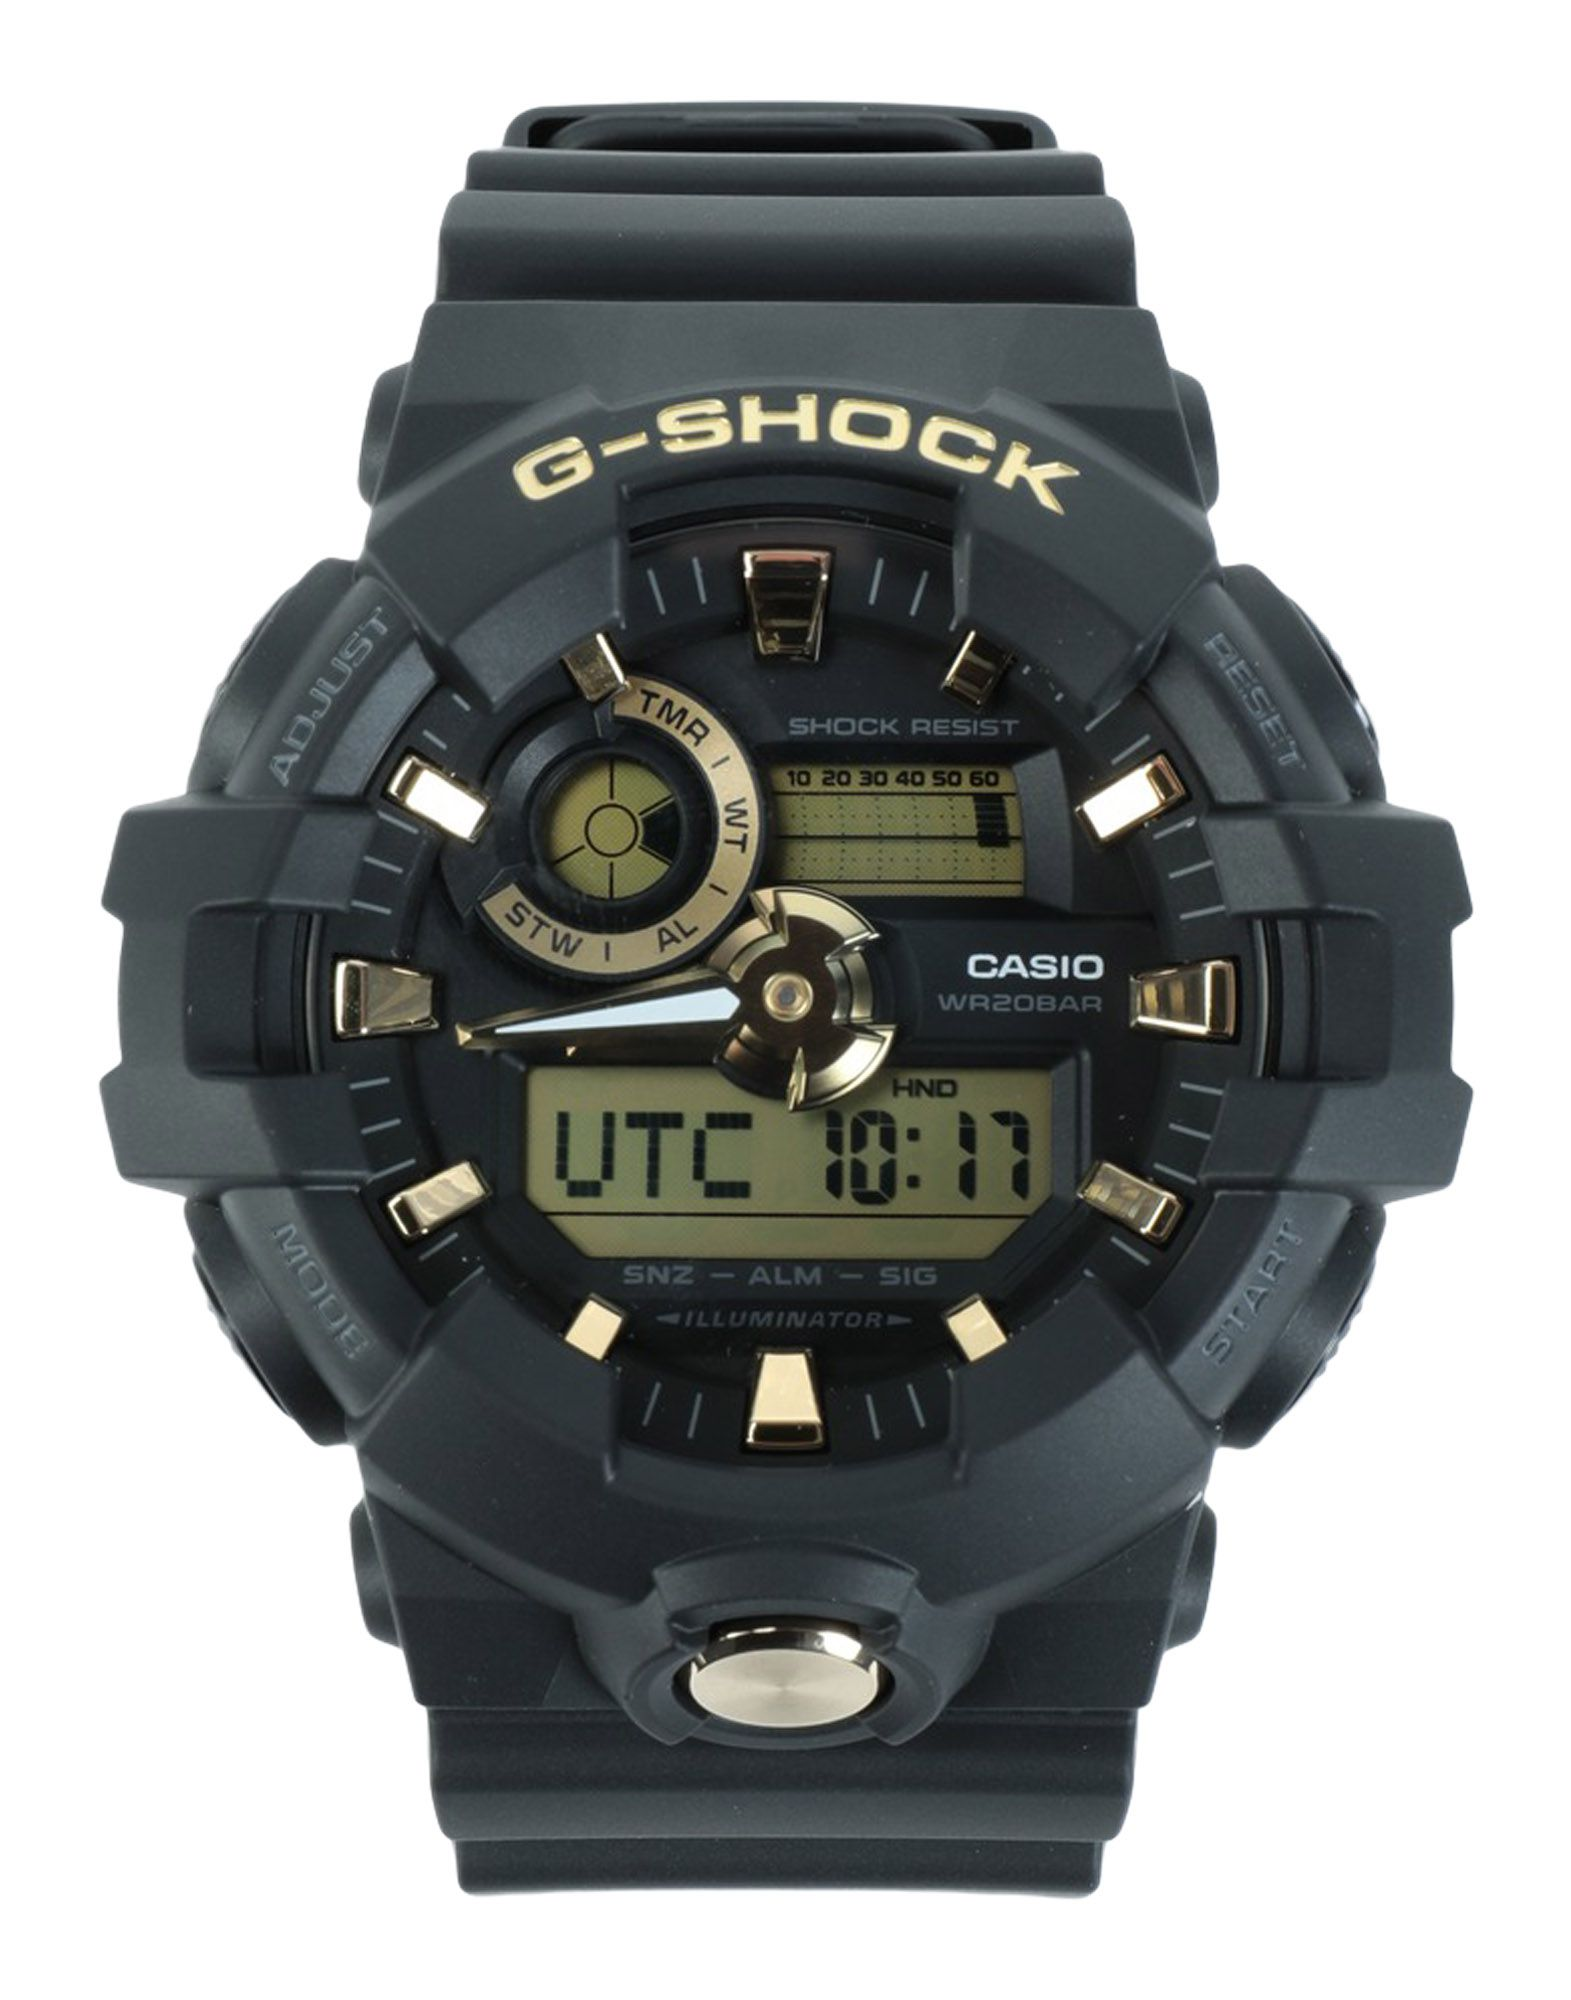 CASIO G-SHOCK Наручные часы casio g shock s series gmd s6900f 4e